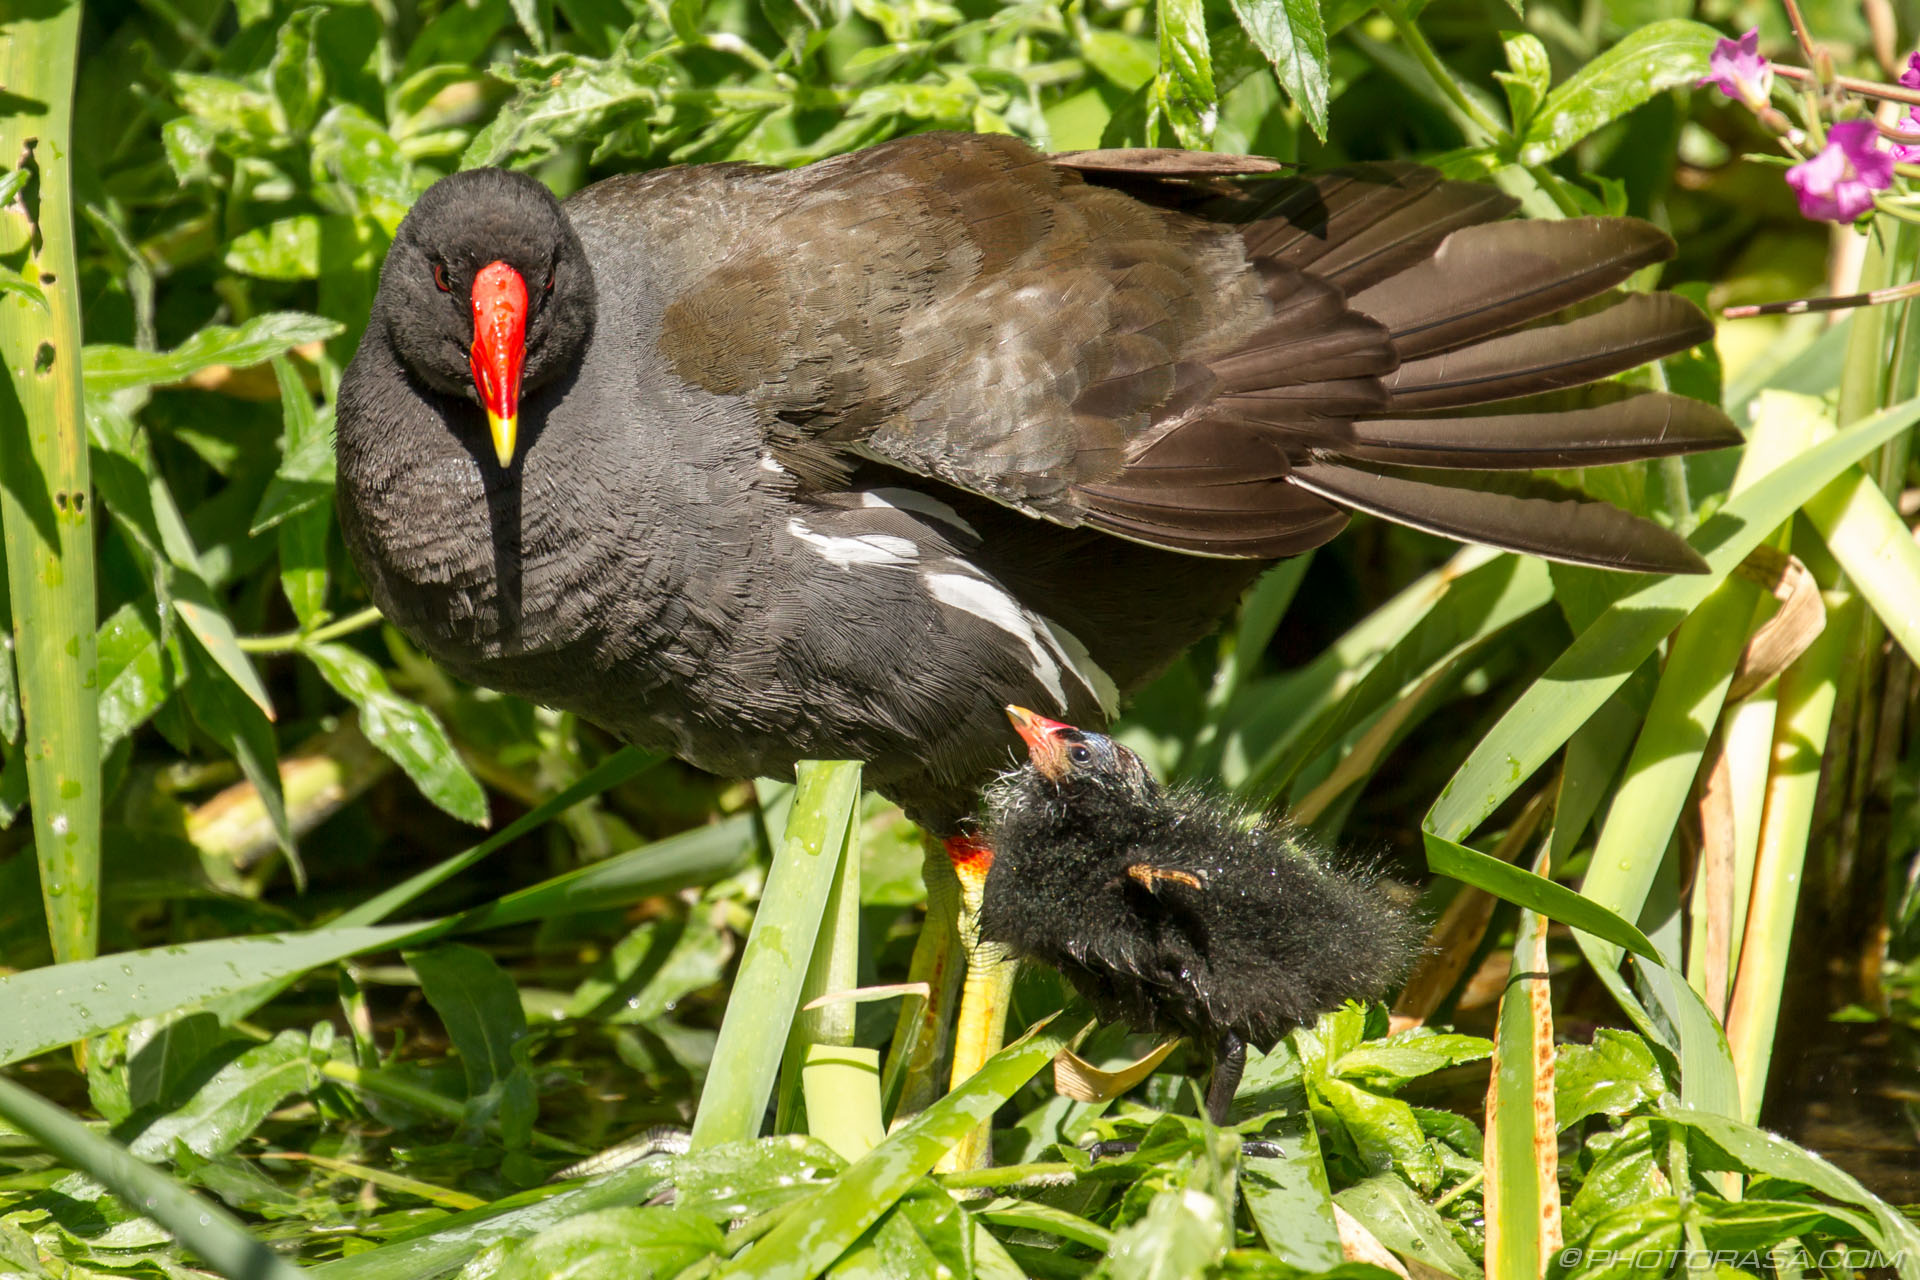 http://photorasa.com/baby-moorhen-and-mother/chick-staring-at-mother/